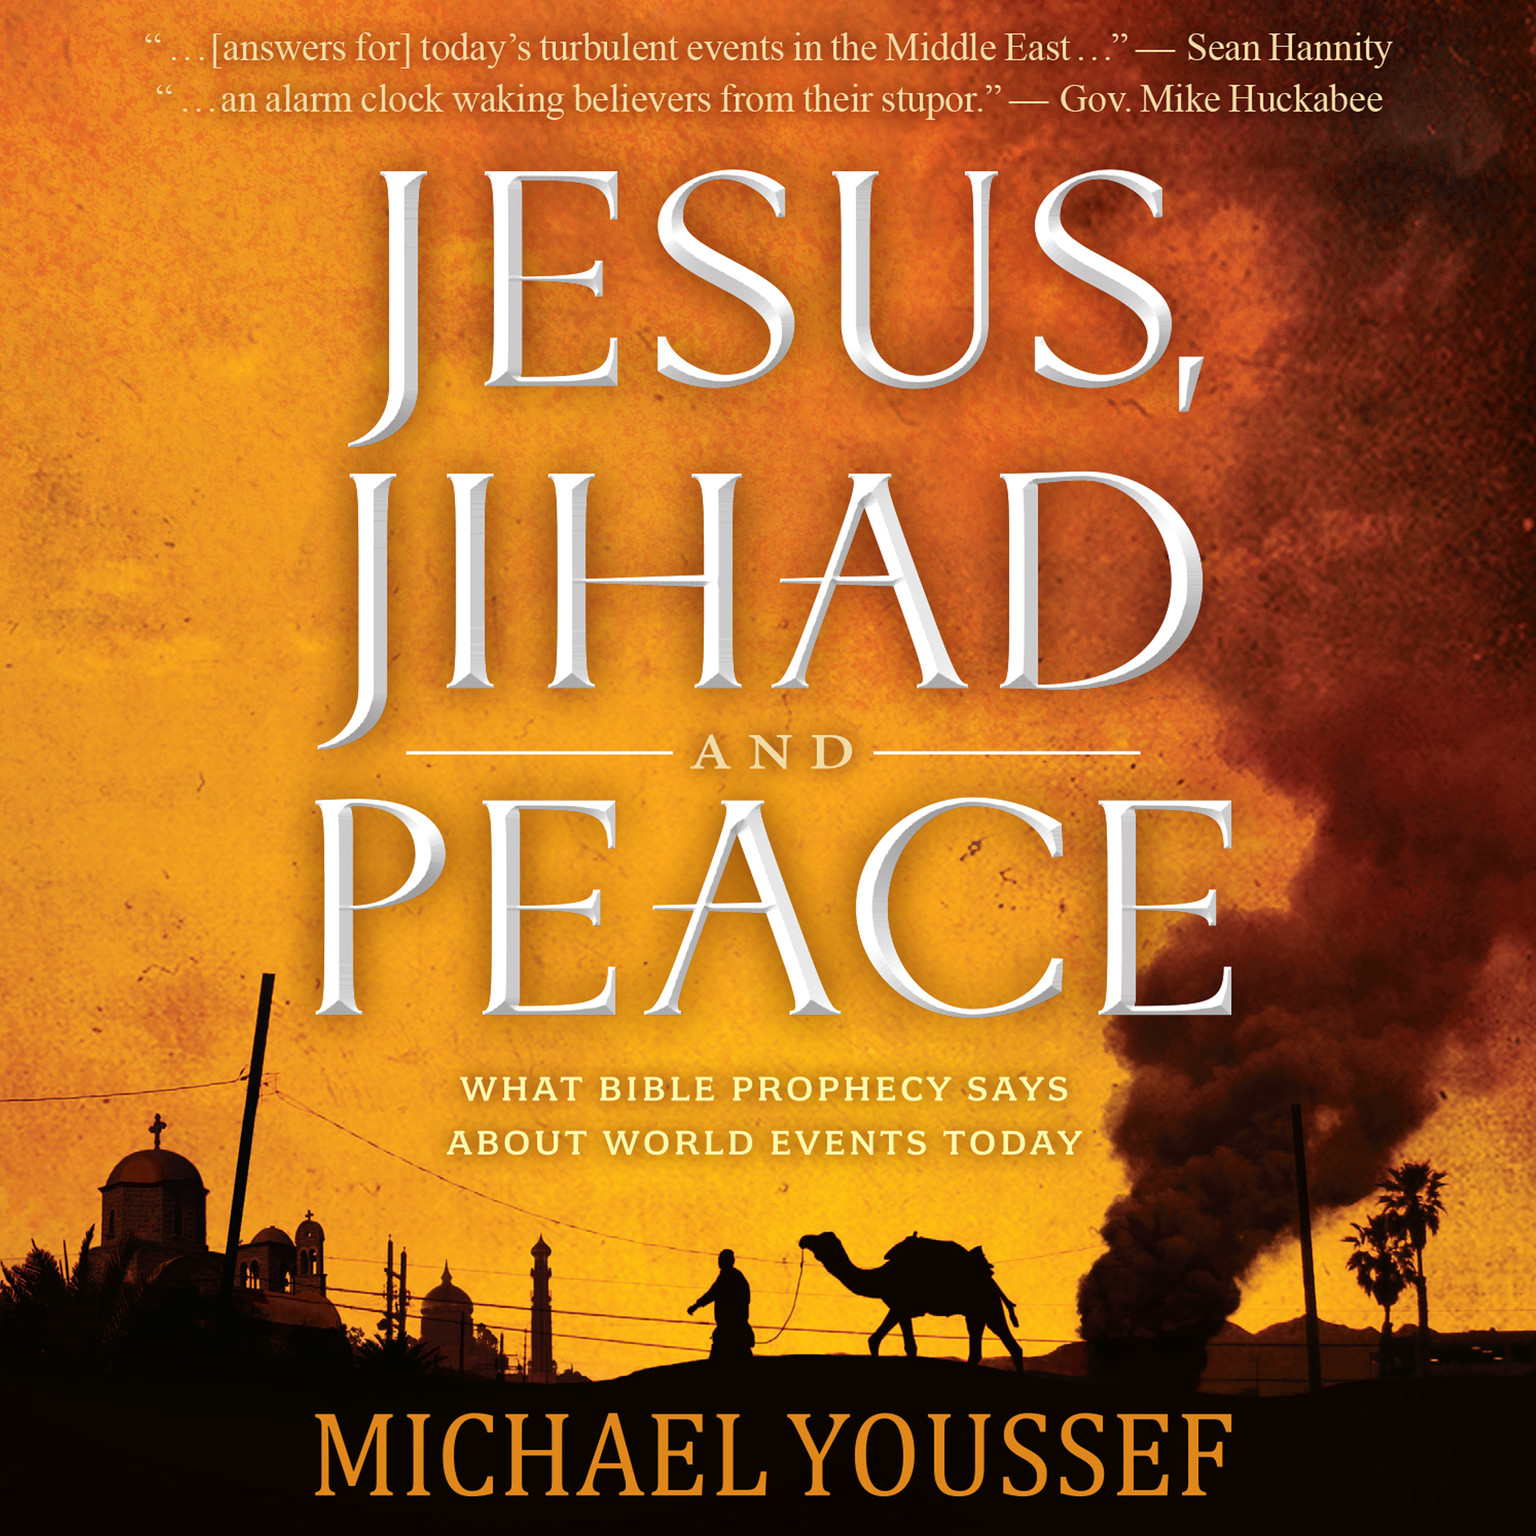 Printable Jesus, Jihad and Peace: What Bible Prophecy Says About World Events Today Audiobook Cover Art